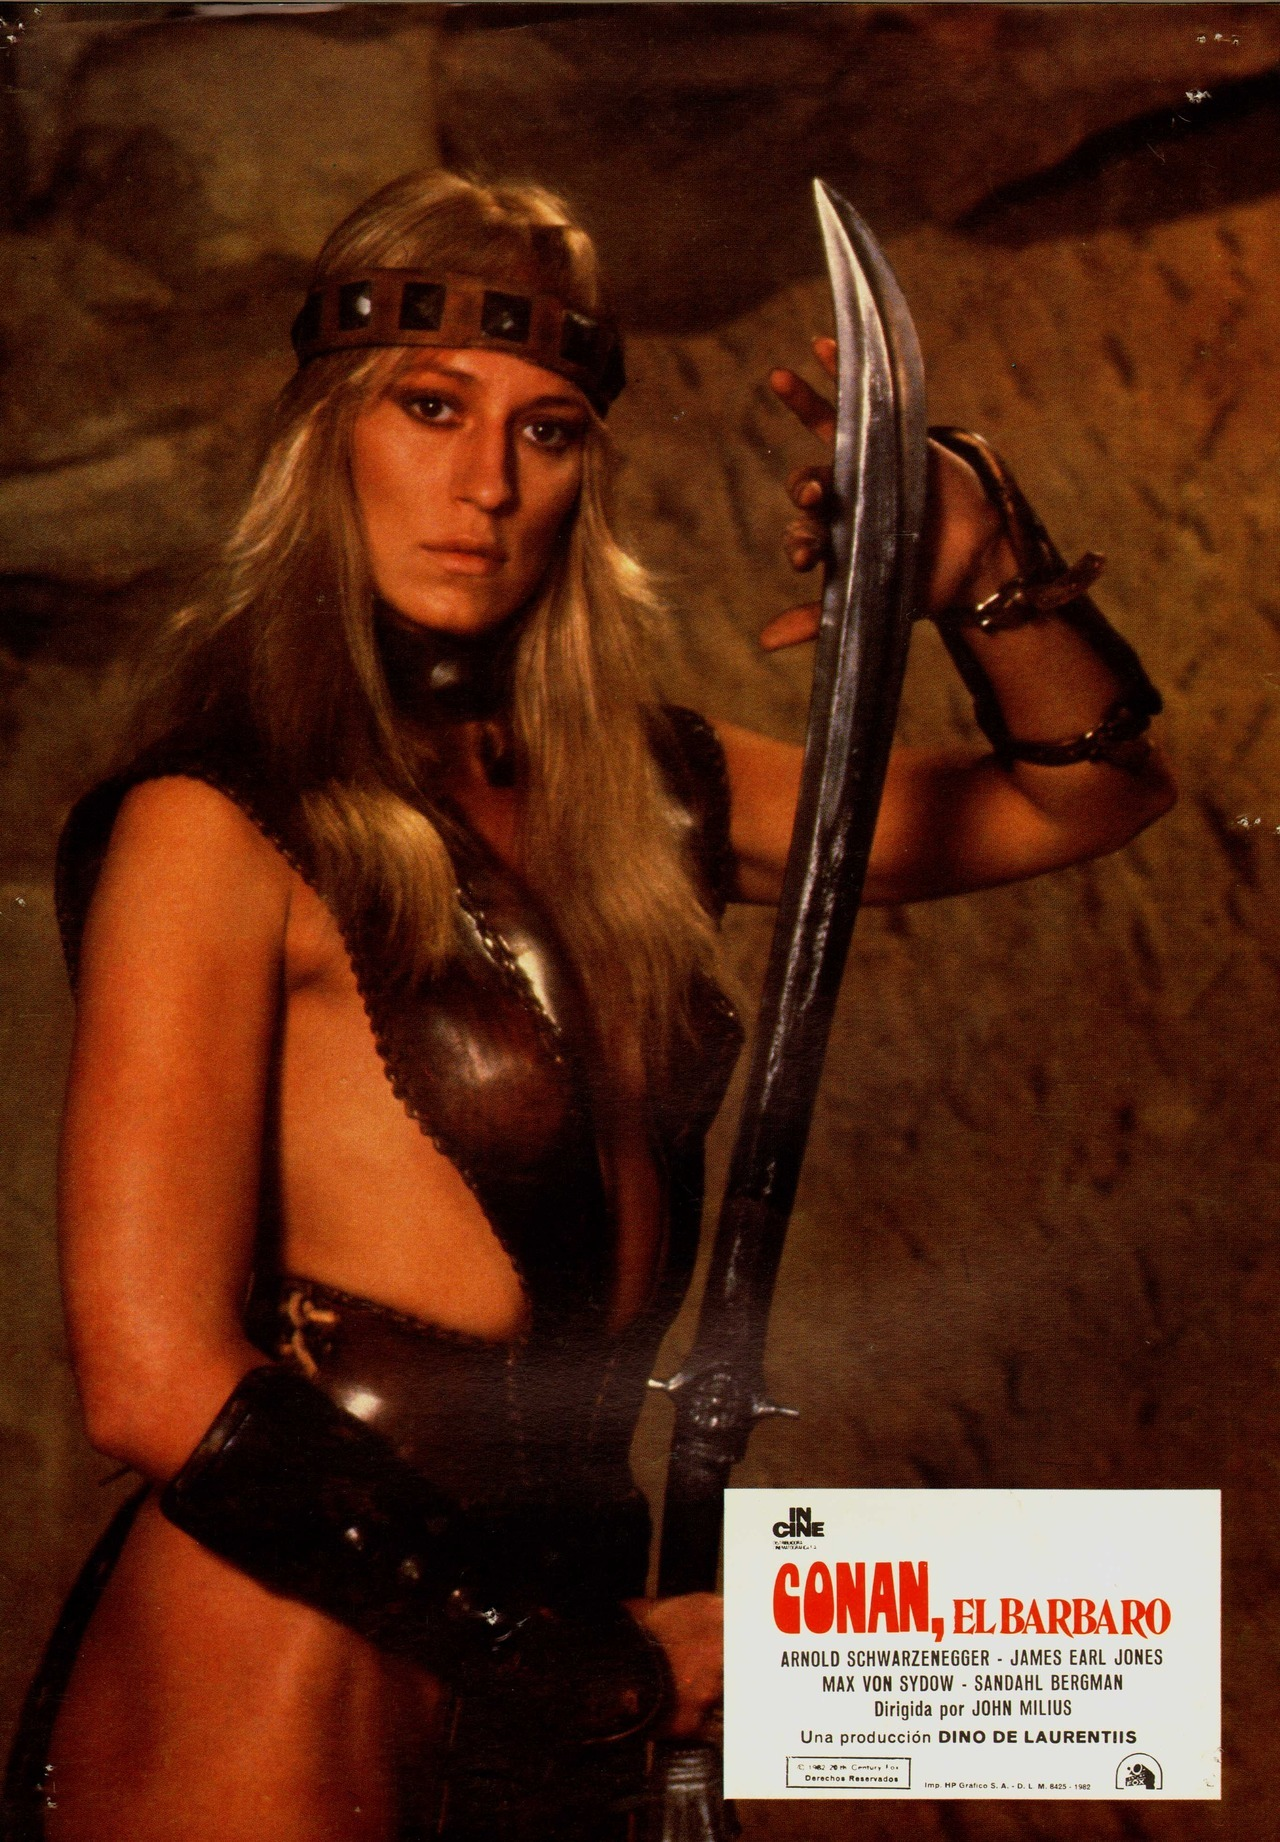 Conan the Barbarian, Spanish lobby card. 1982